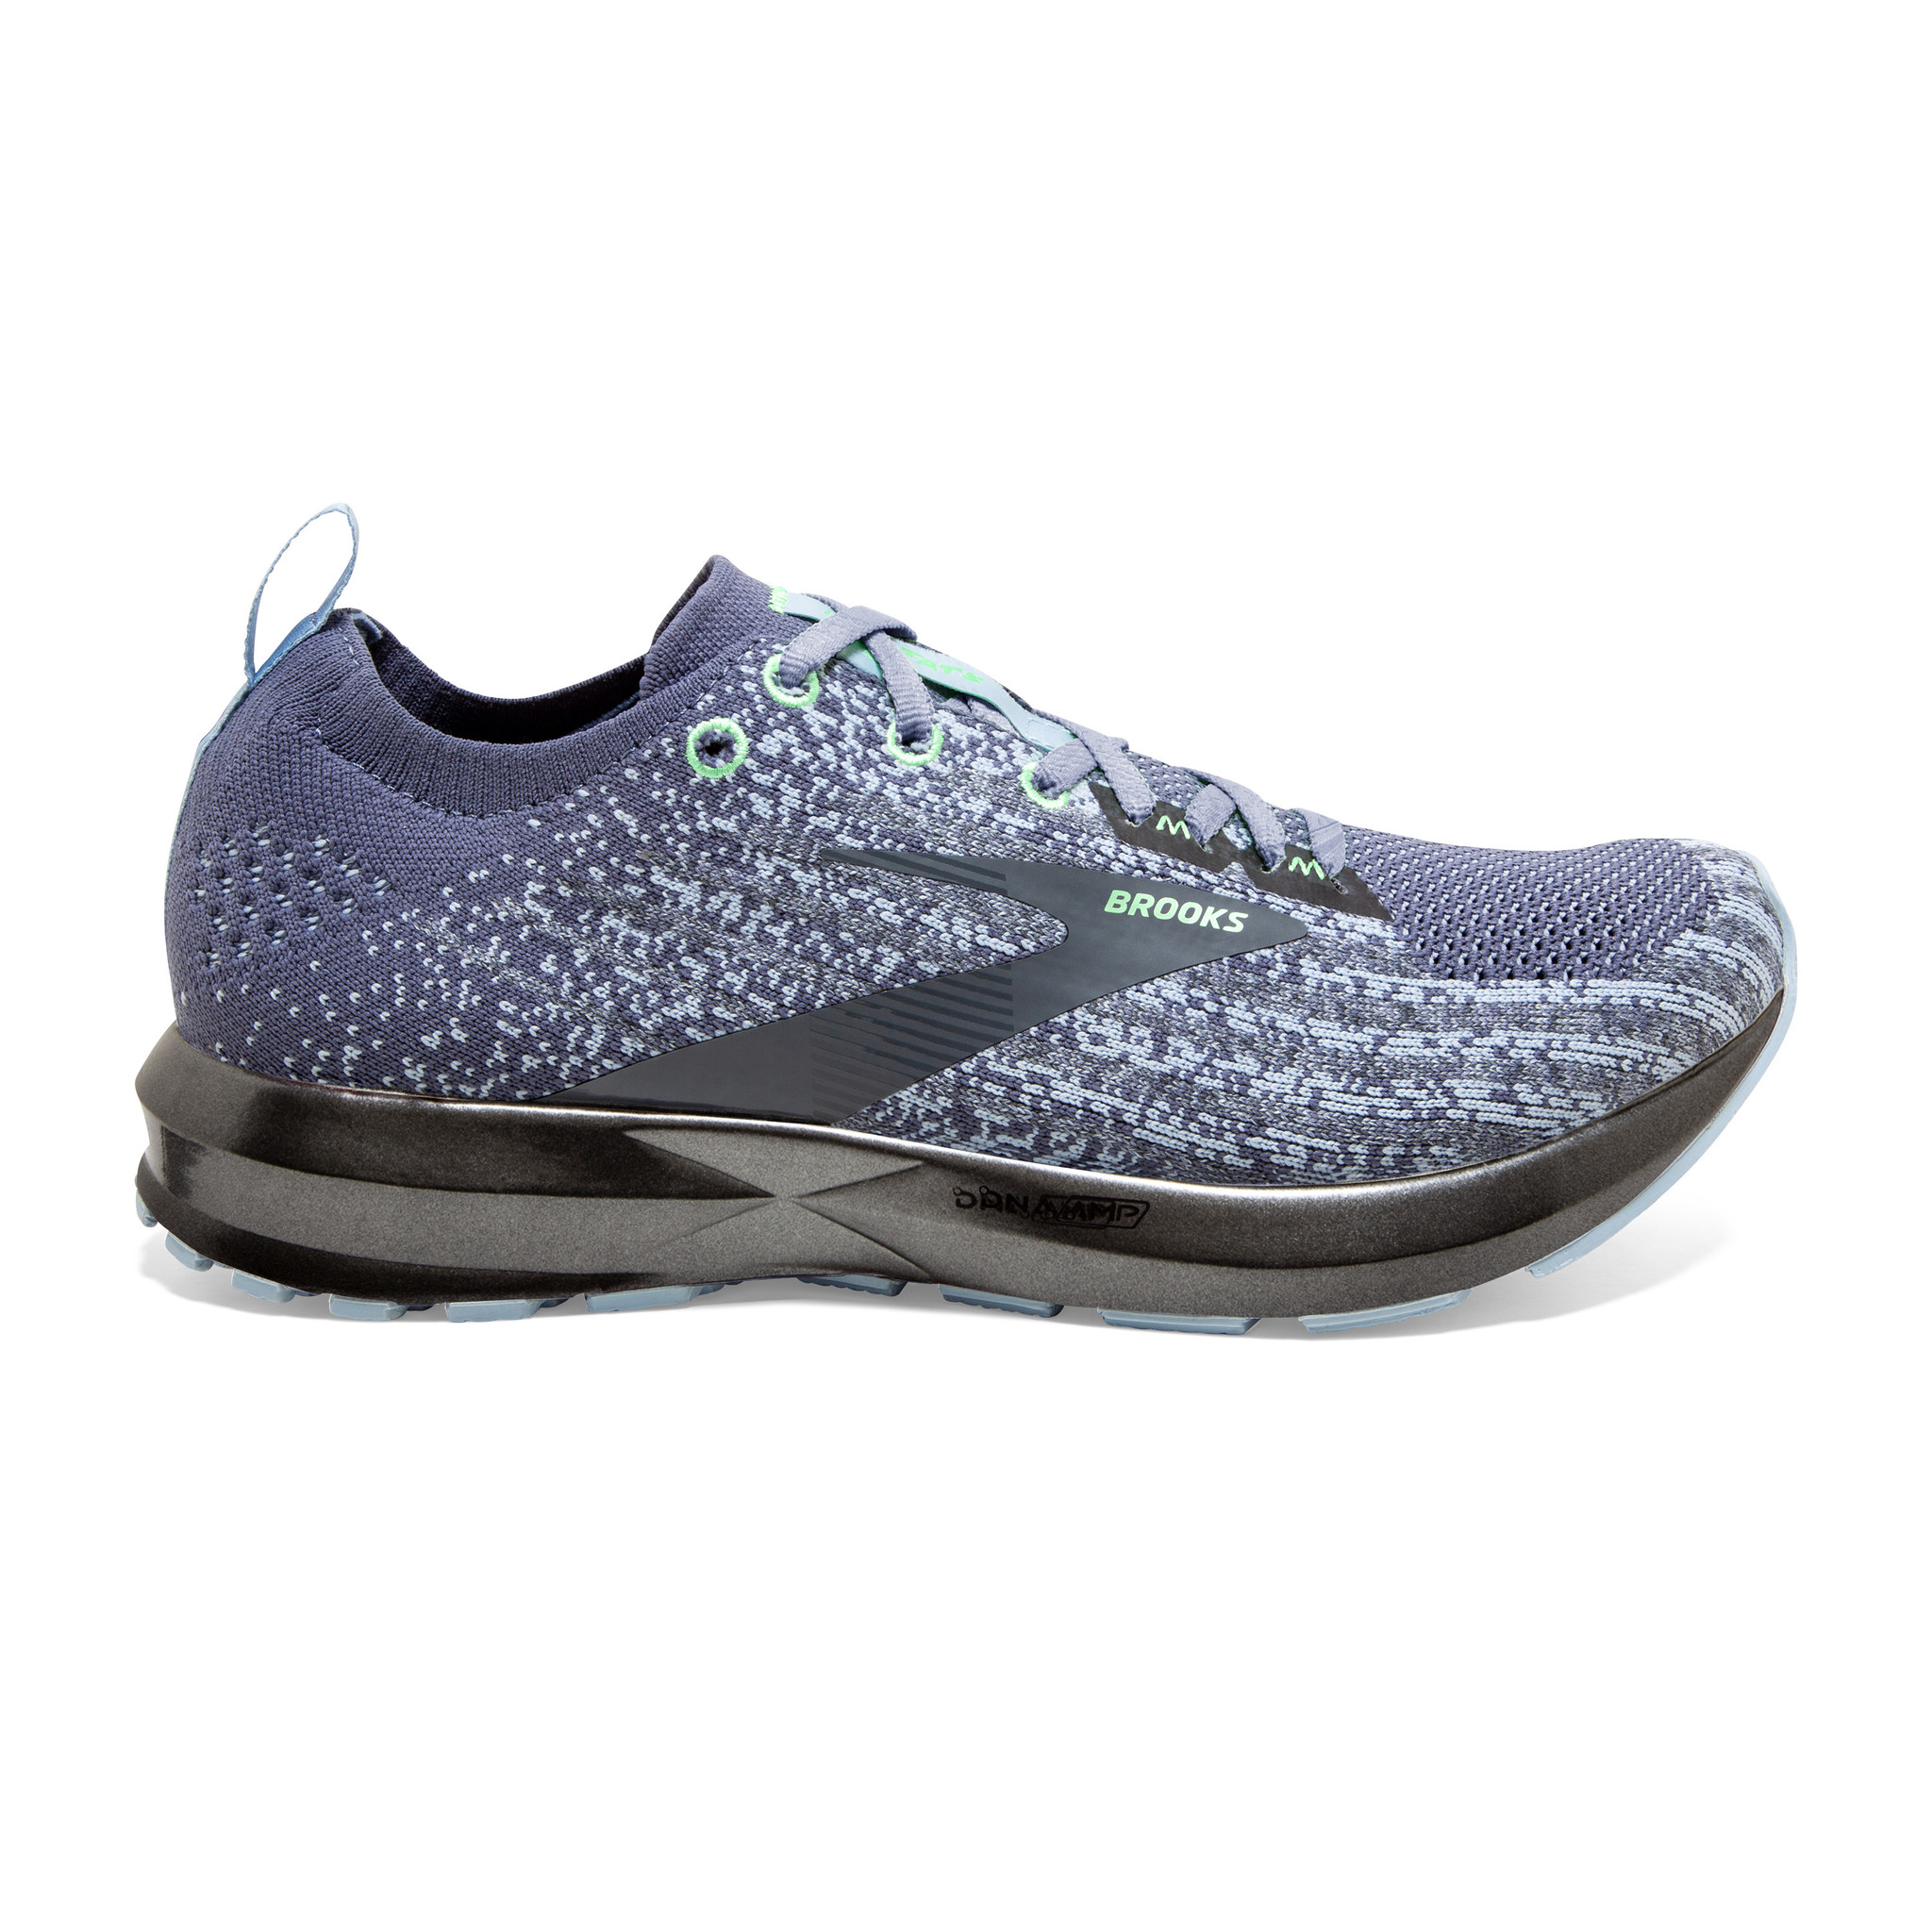 Brooks Brooks Levitate 3 - Women